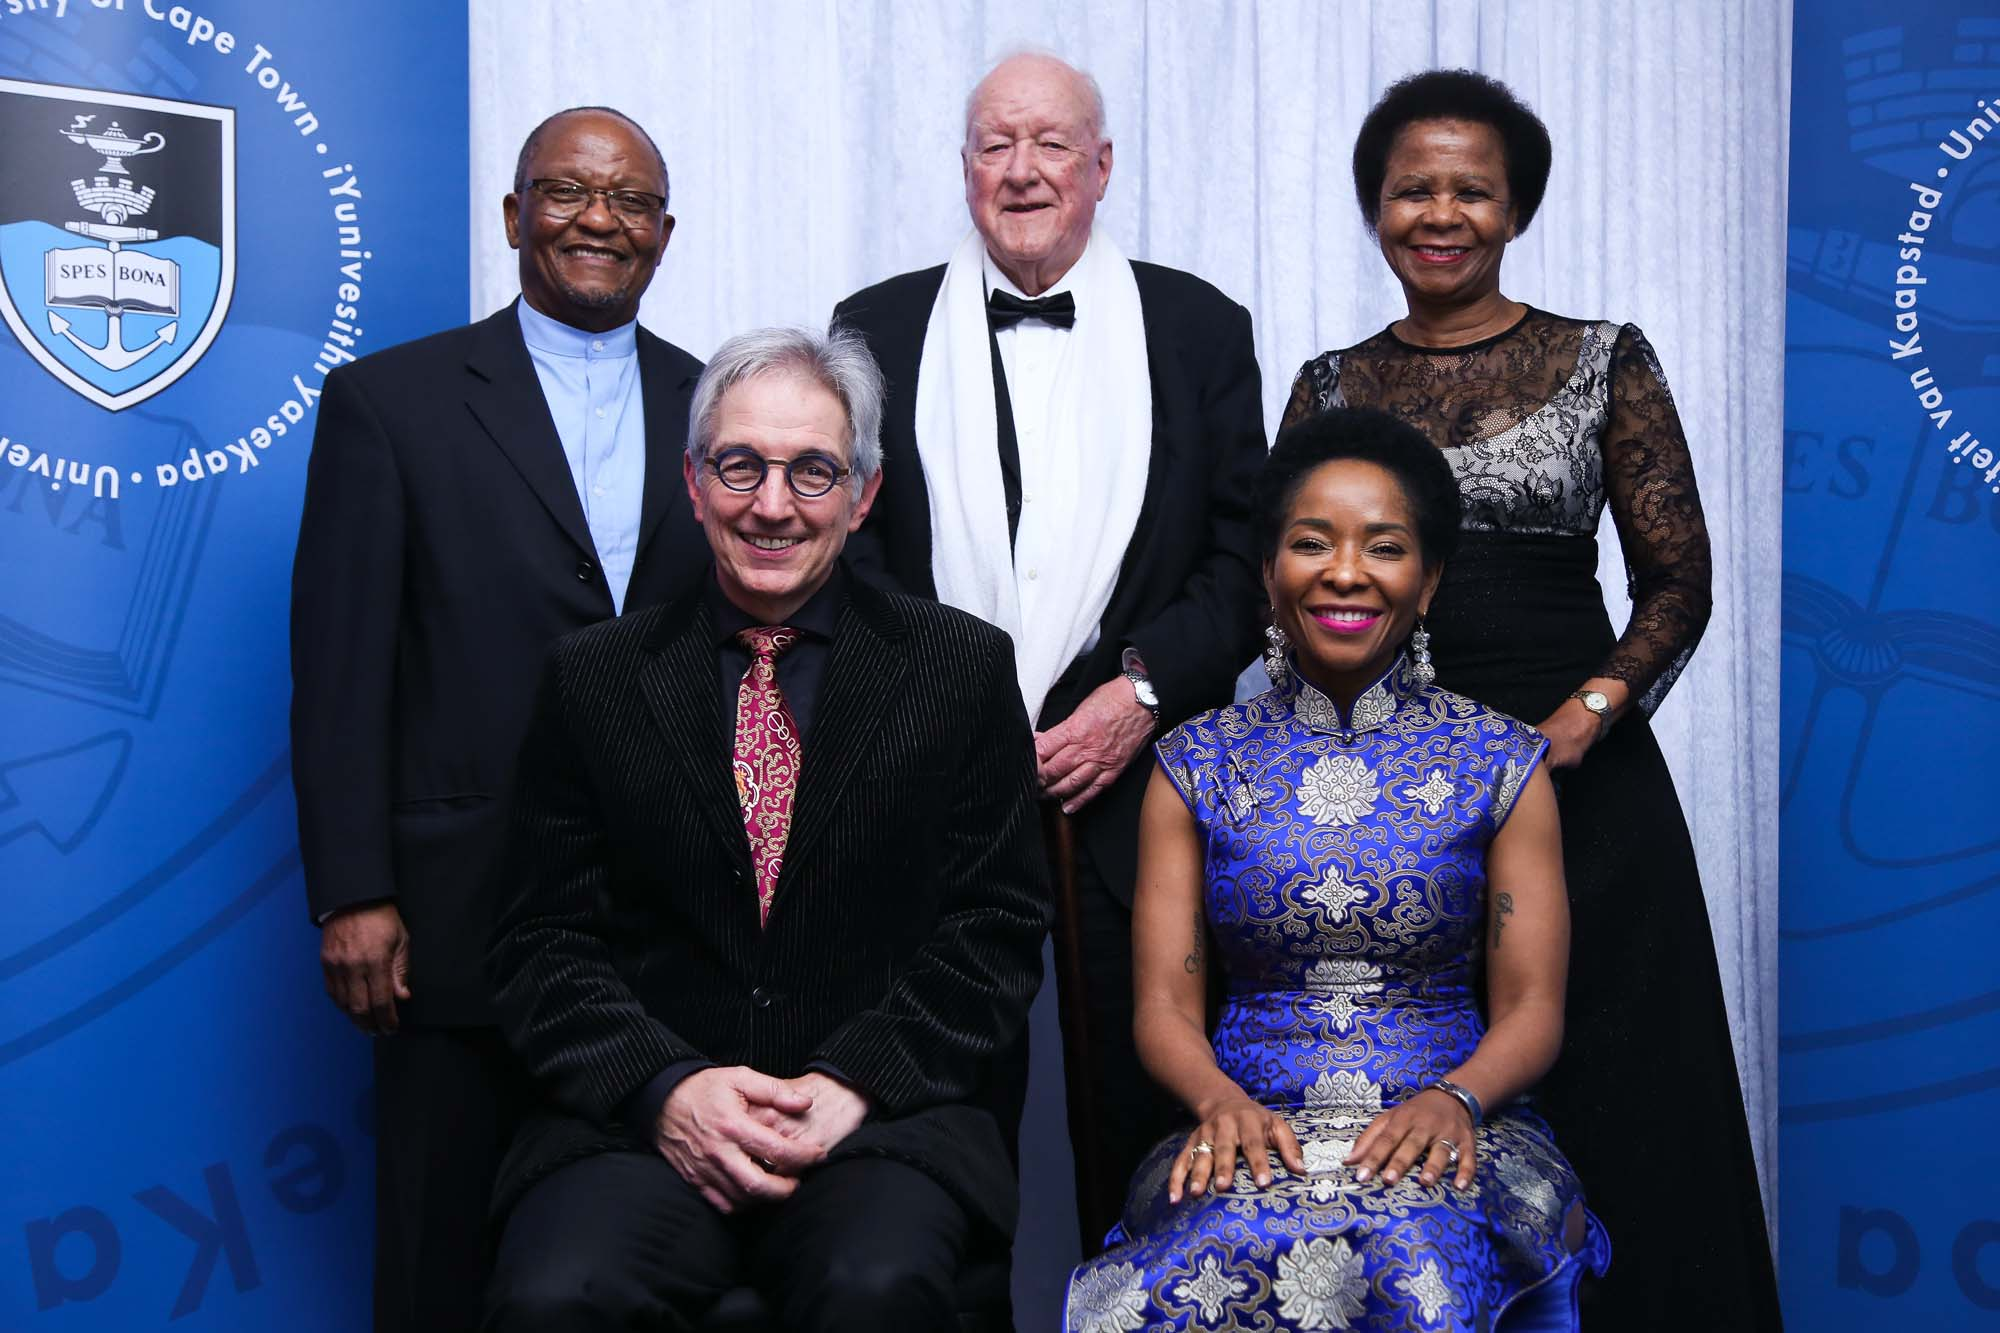 A farewell gala dinner at the V&A Waterfront for Dr Max Price saw five consecutive UCT vice-chancellors under the same roof: (from left) Prof Njabulo S Ndebele (2001–2008), Dr Max Price (2008–2018), Prof Stuart Saunders (1981–1996), Prof Mamokgethi Phakeng (2018–) and Dr Mamphela Ramphele (1997–2000).